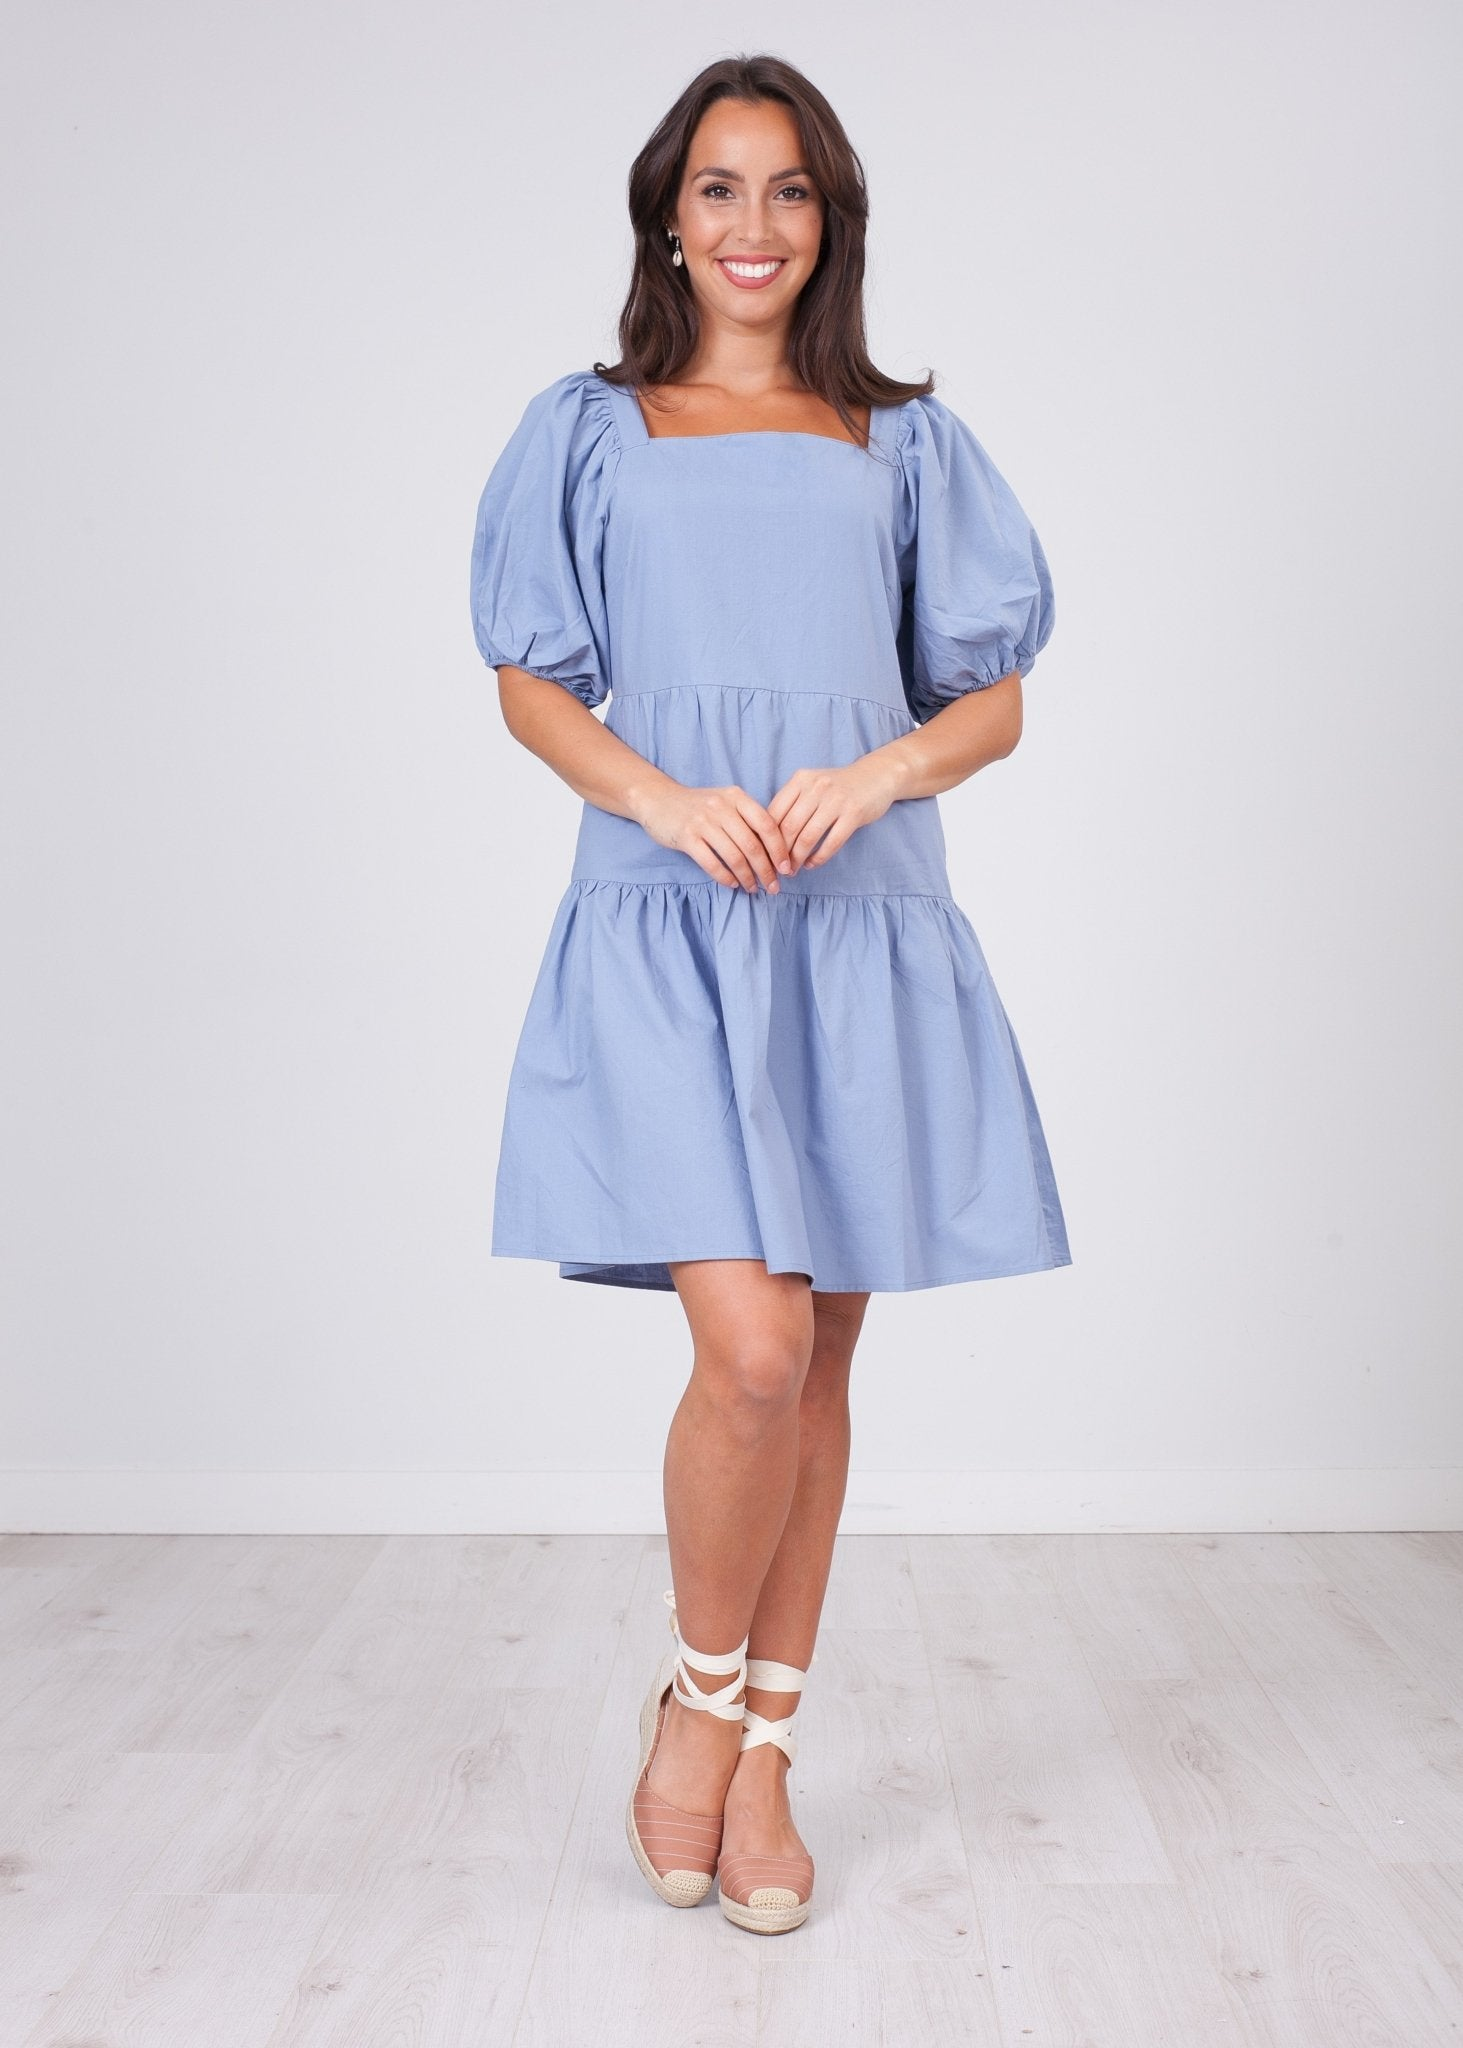 Nora Blue Tiered Dress - The Walk in Wardrobe